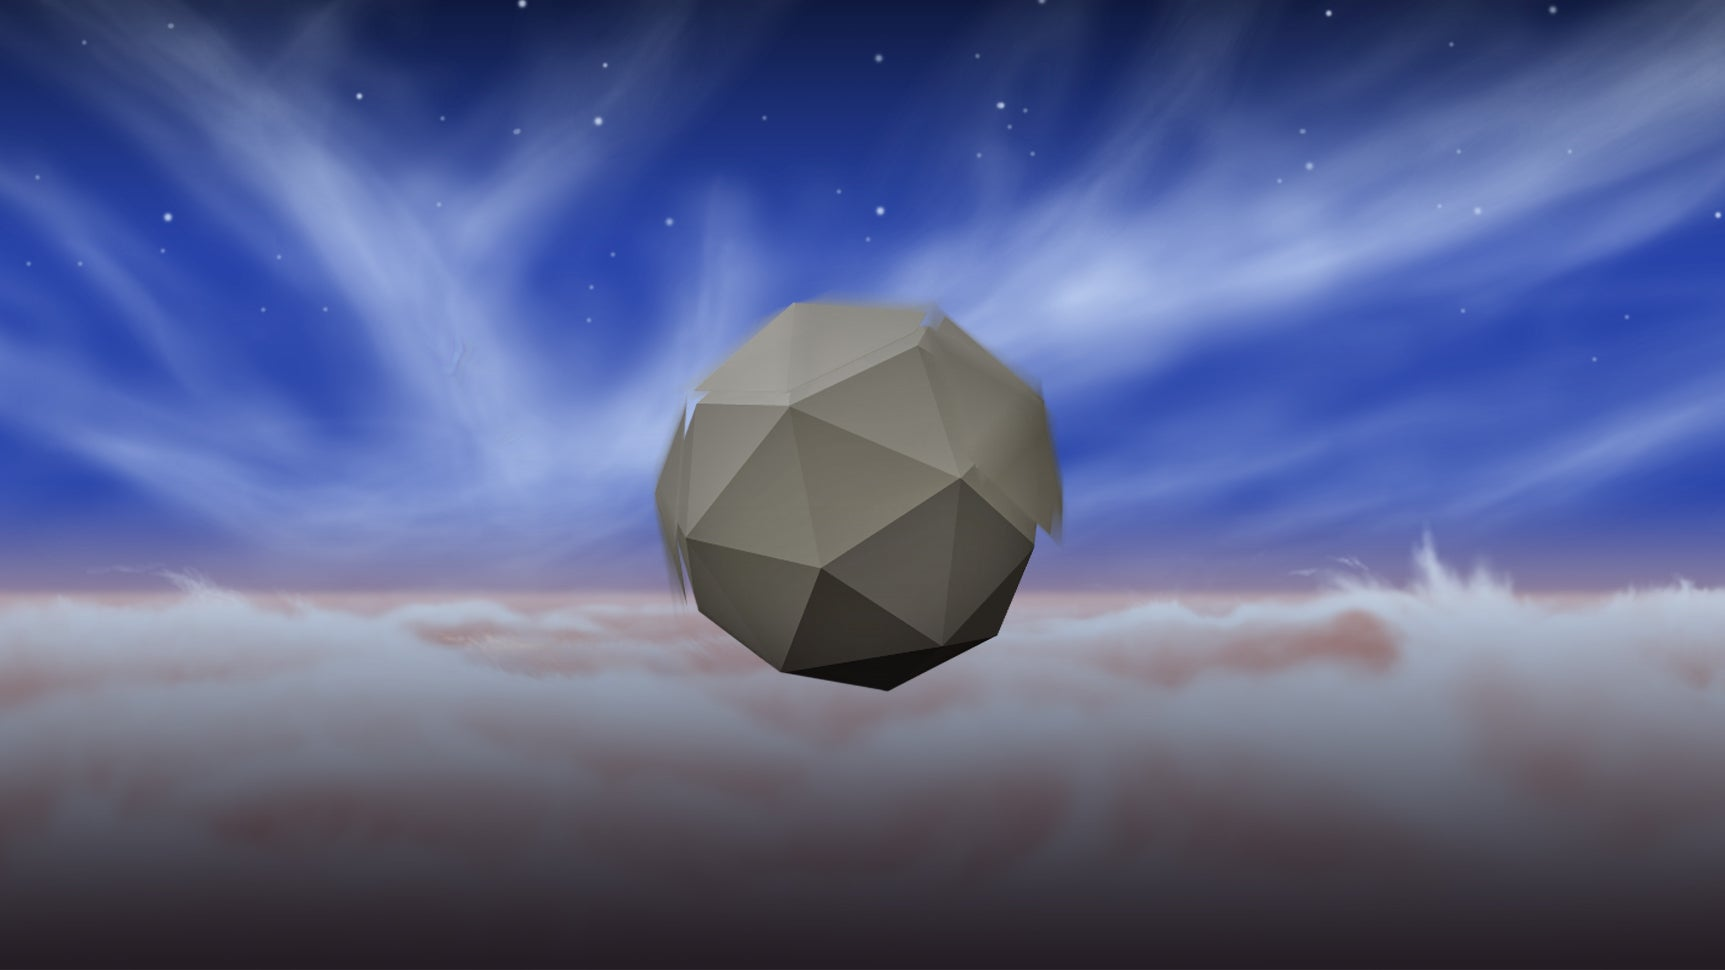 'Windbot' Probes Designed To Explore Gas Giants